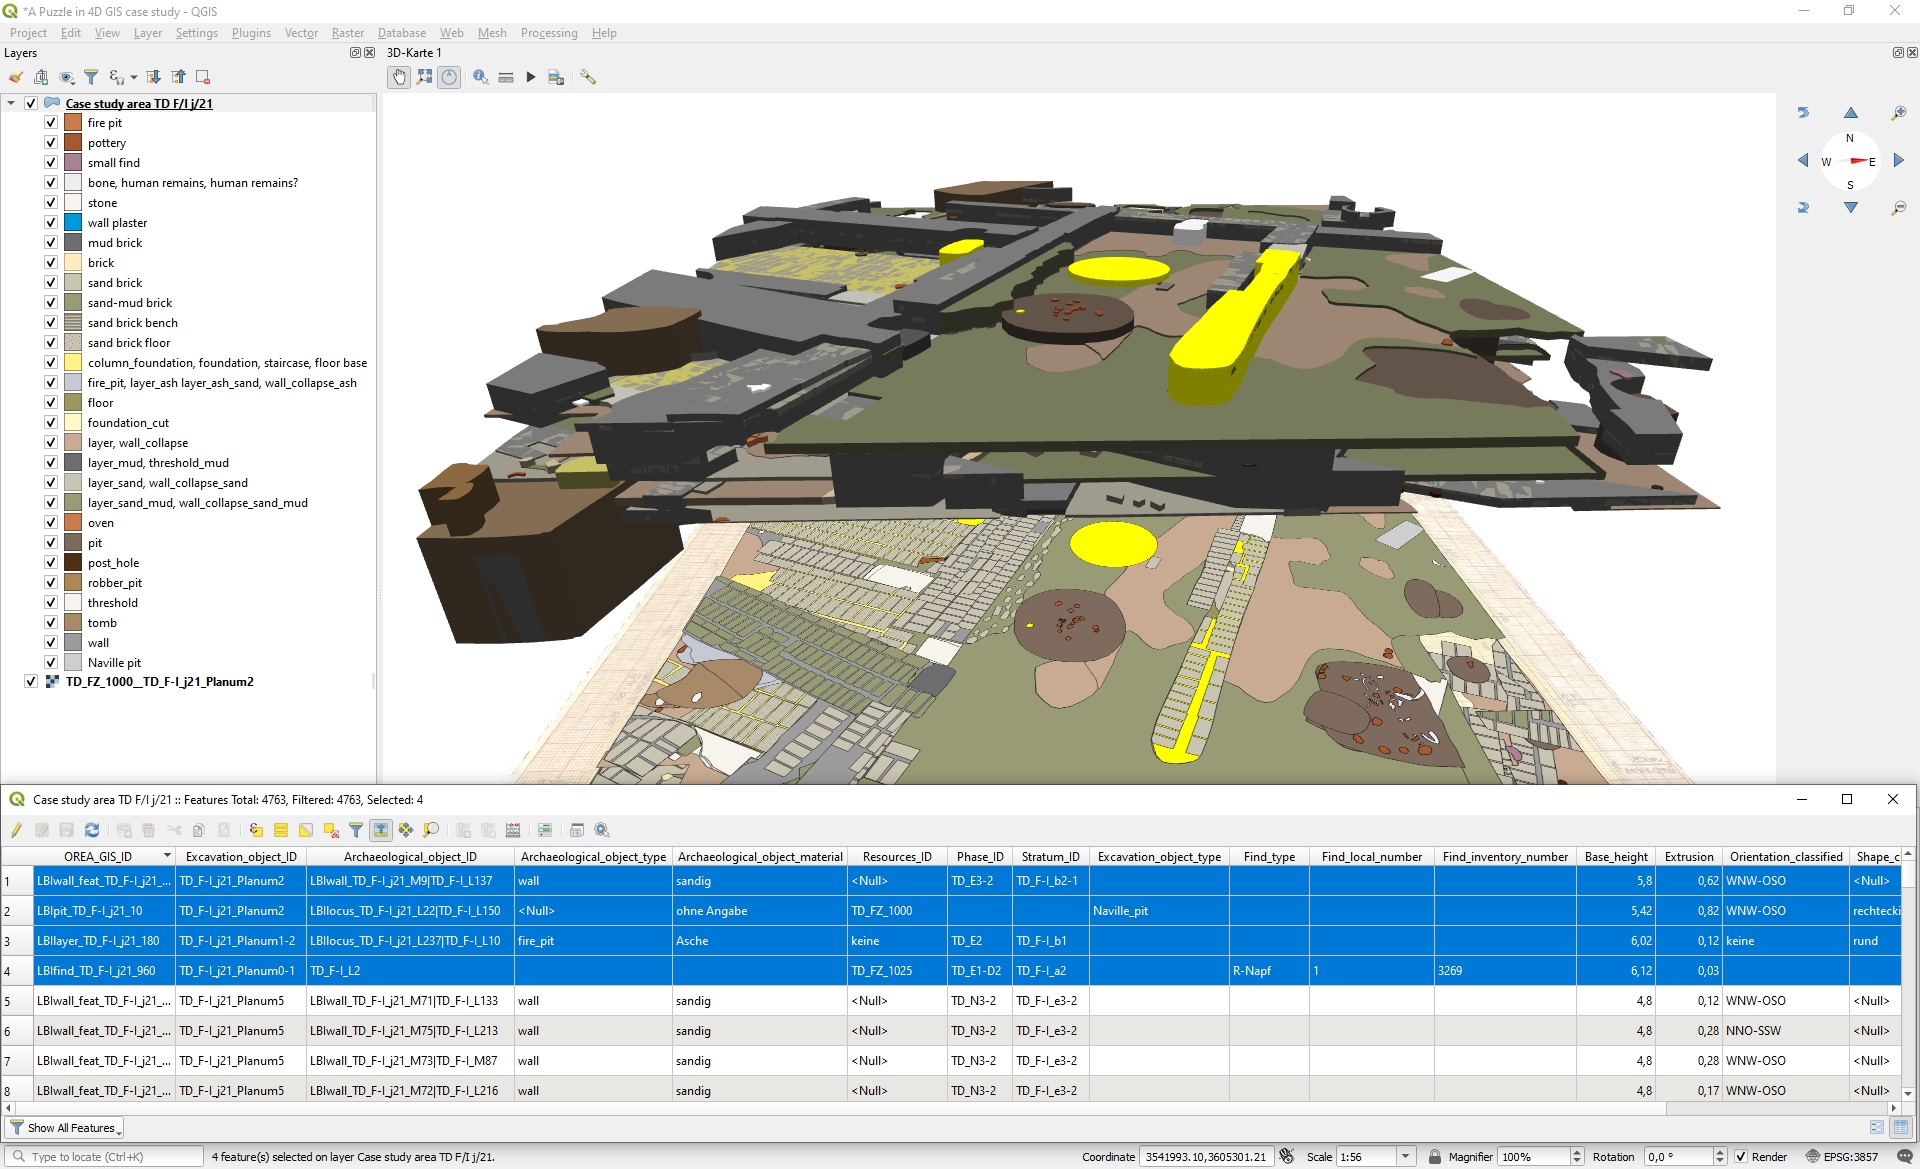 Screenshot of the 3D view of the GIS project in QGIS.